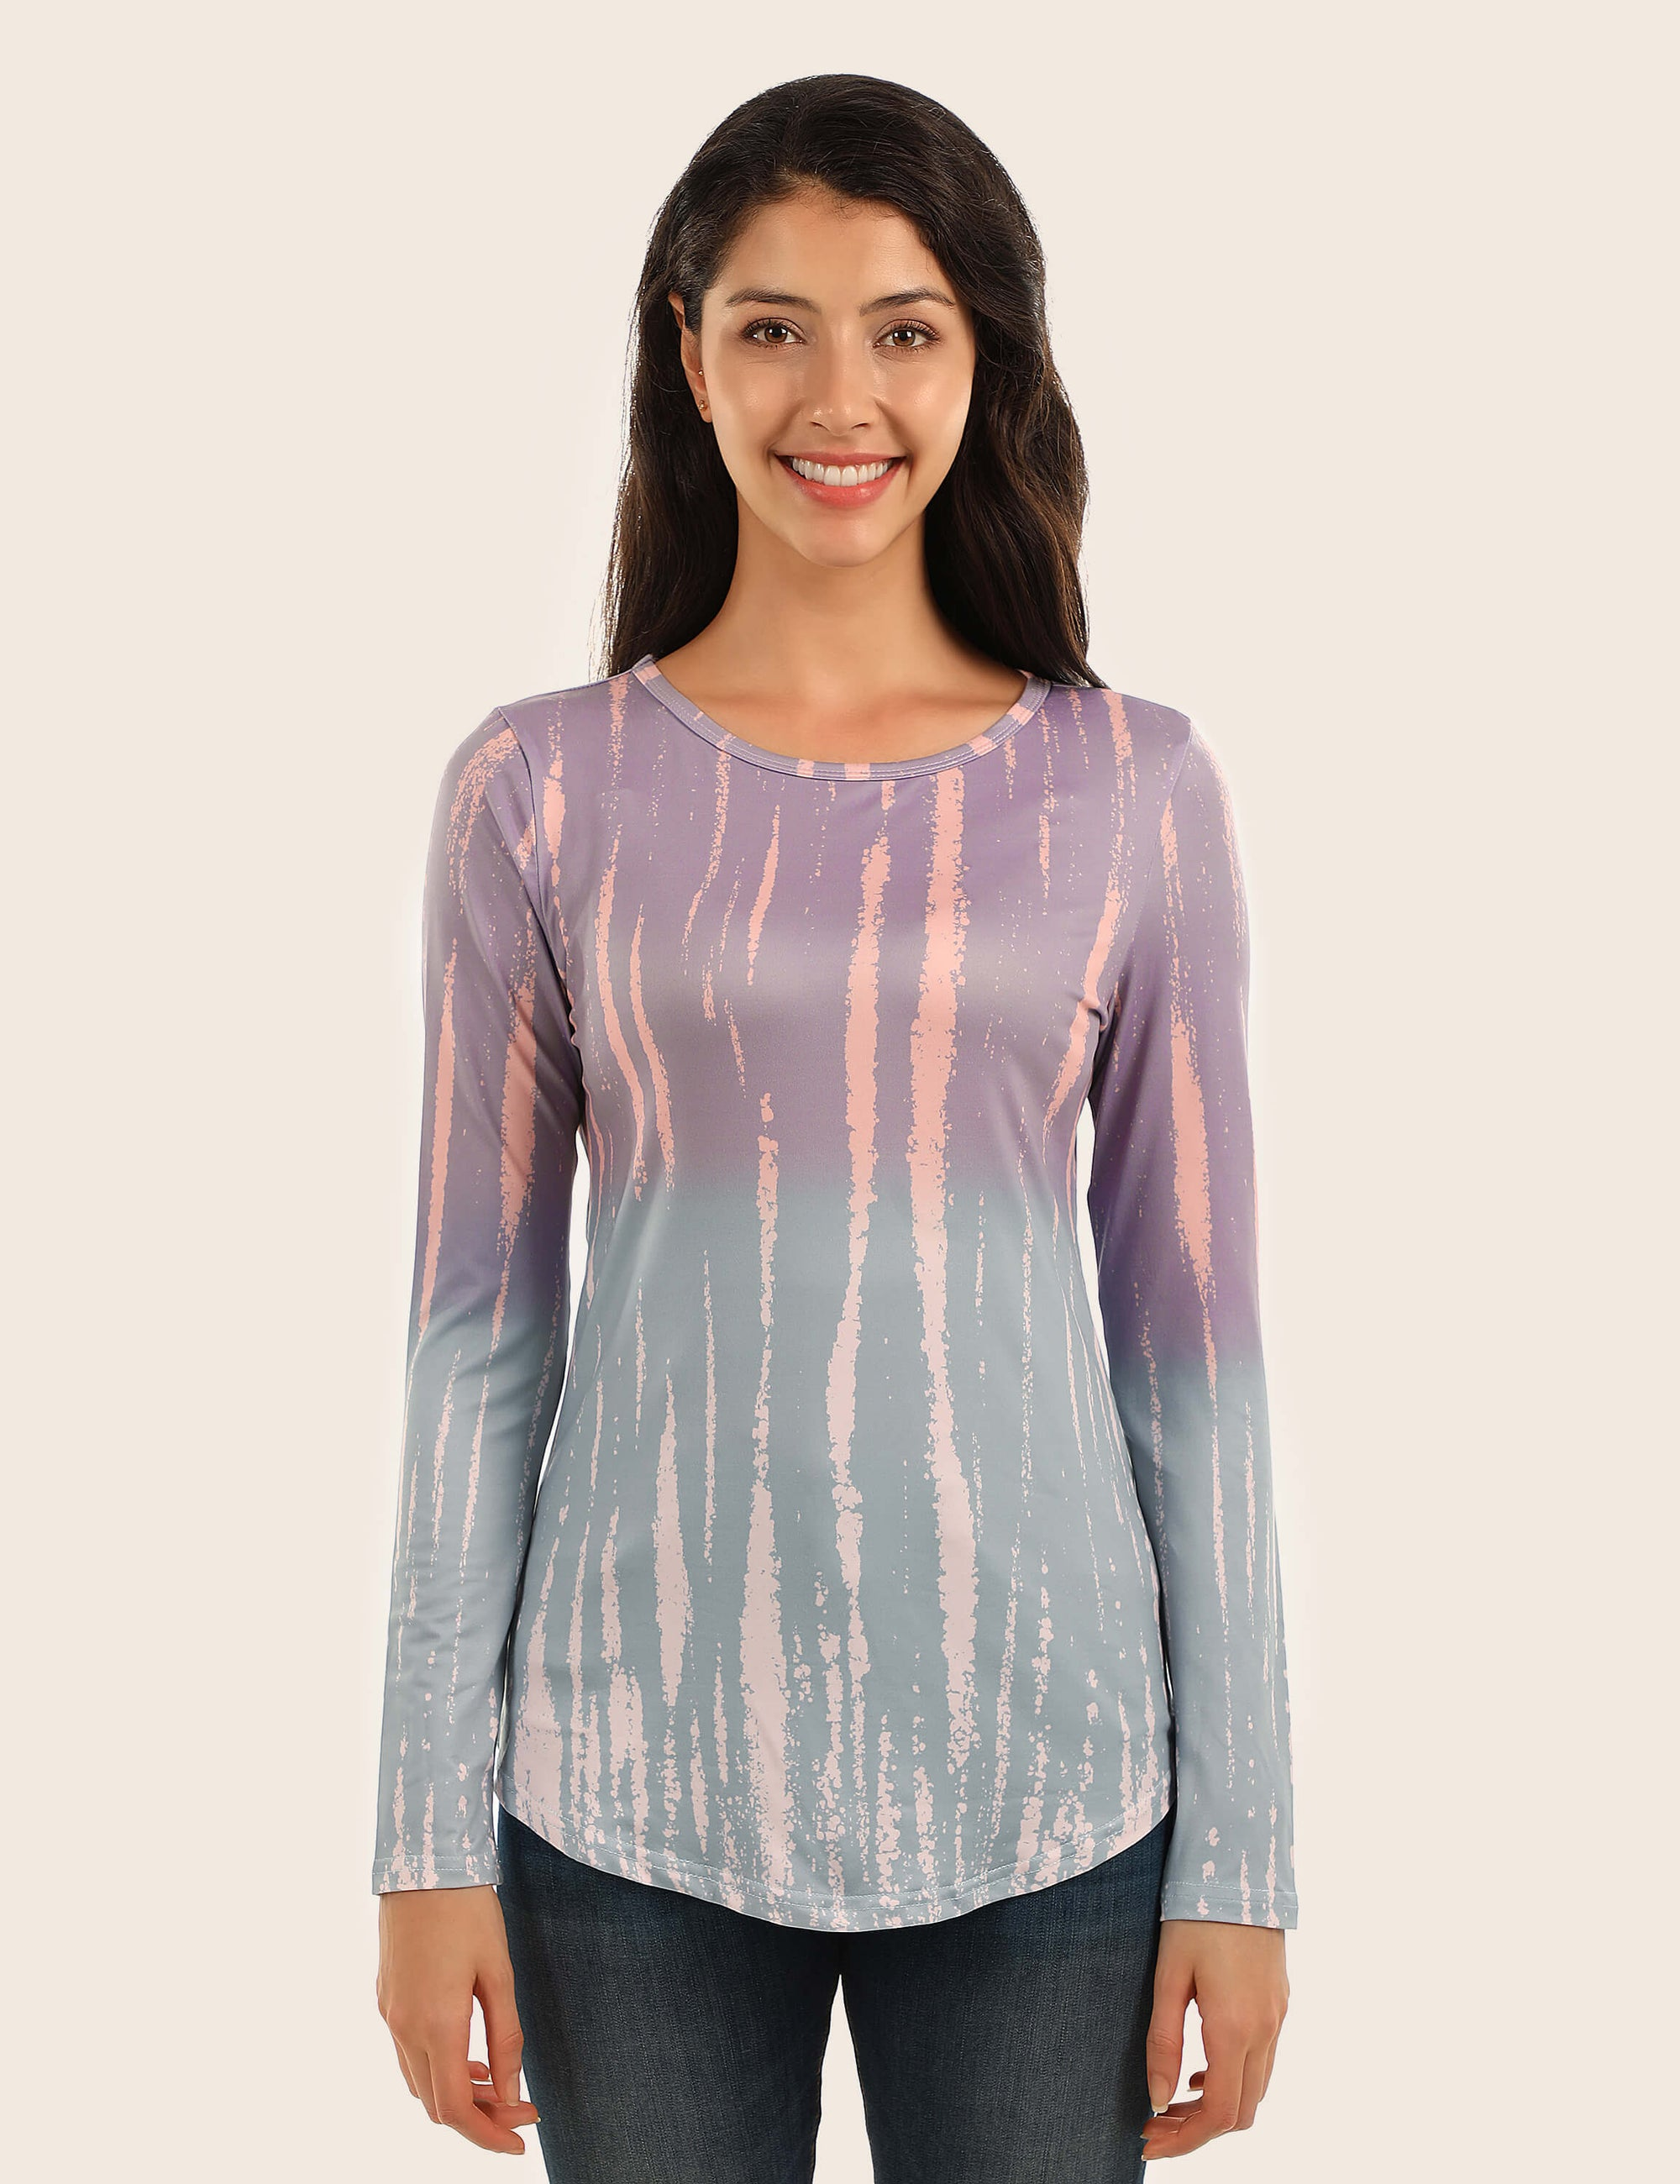 Fantasy Dream Skinny Tie Dye T-Shirt - Blooming Jelly